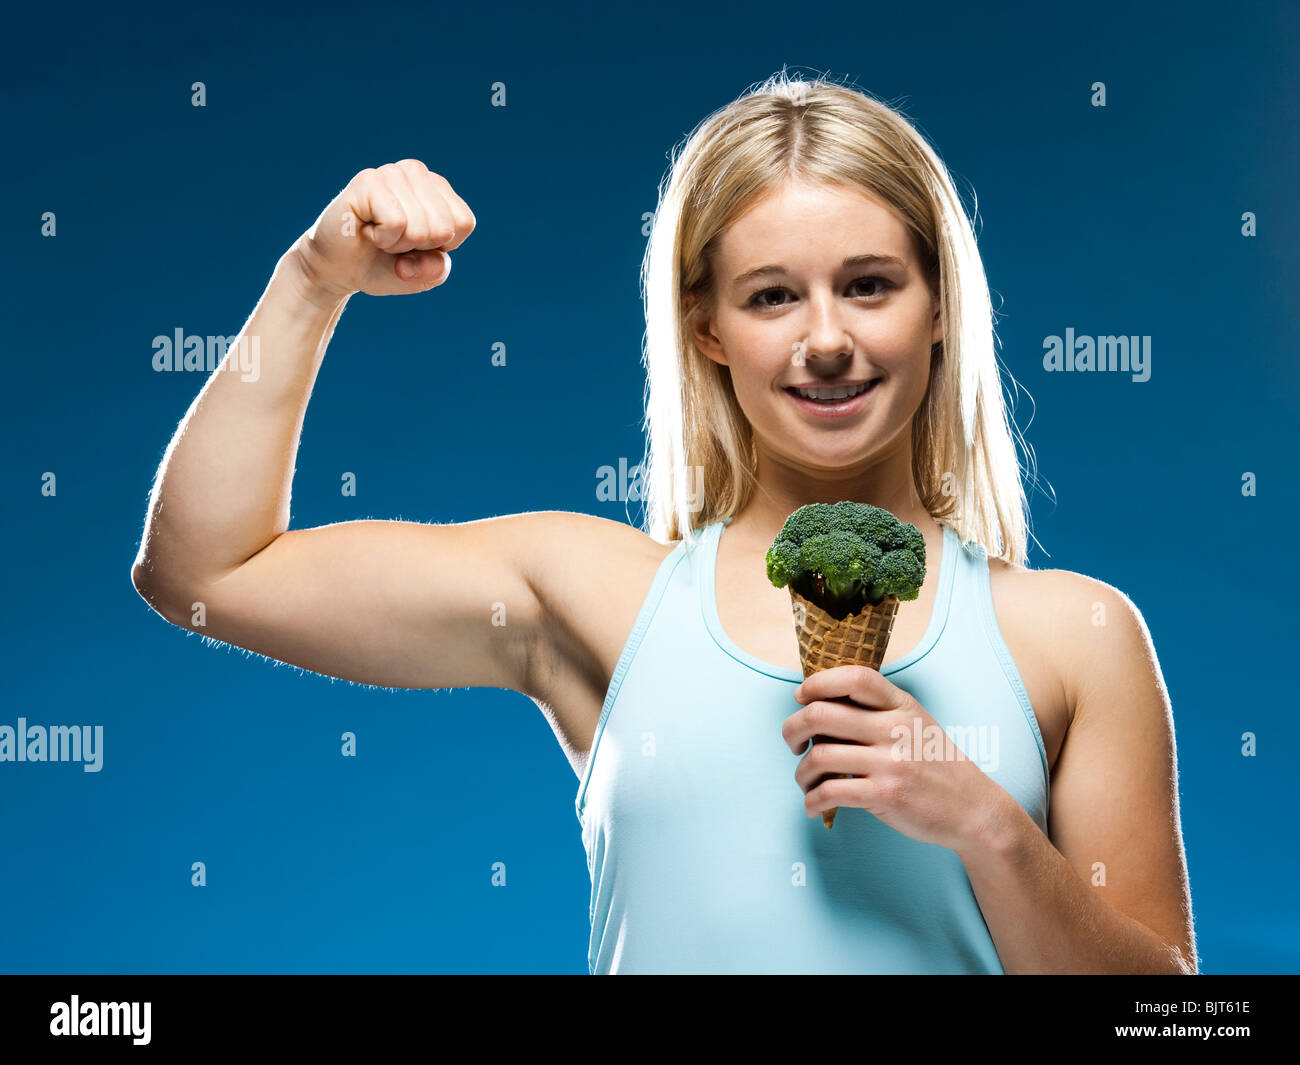 Studio portrait of young woman holding broccoli ice cream - Stock Image